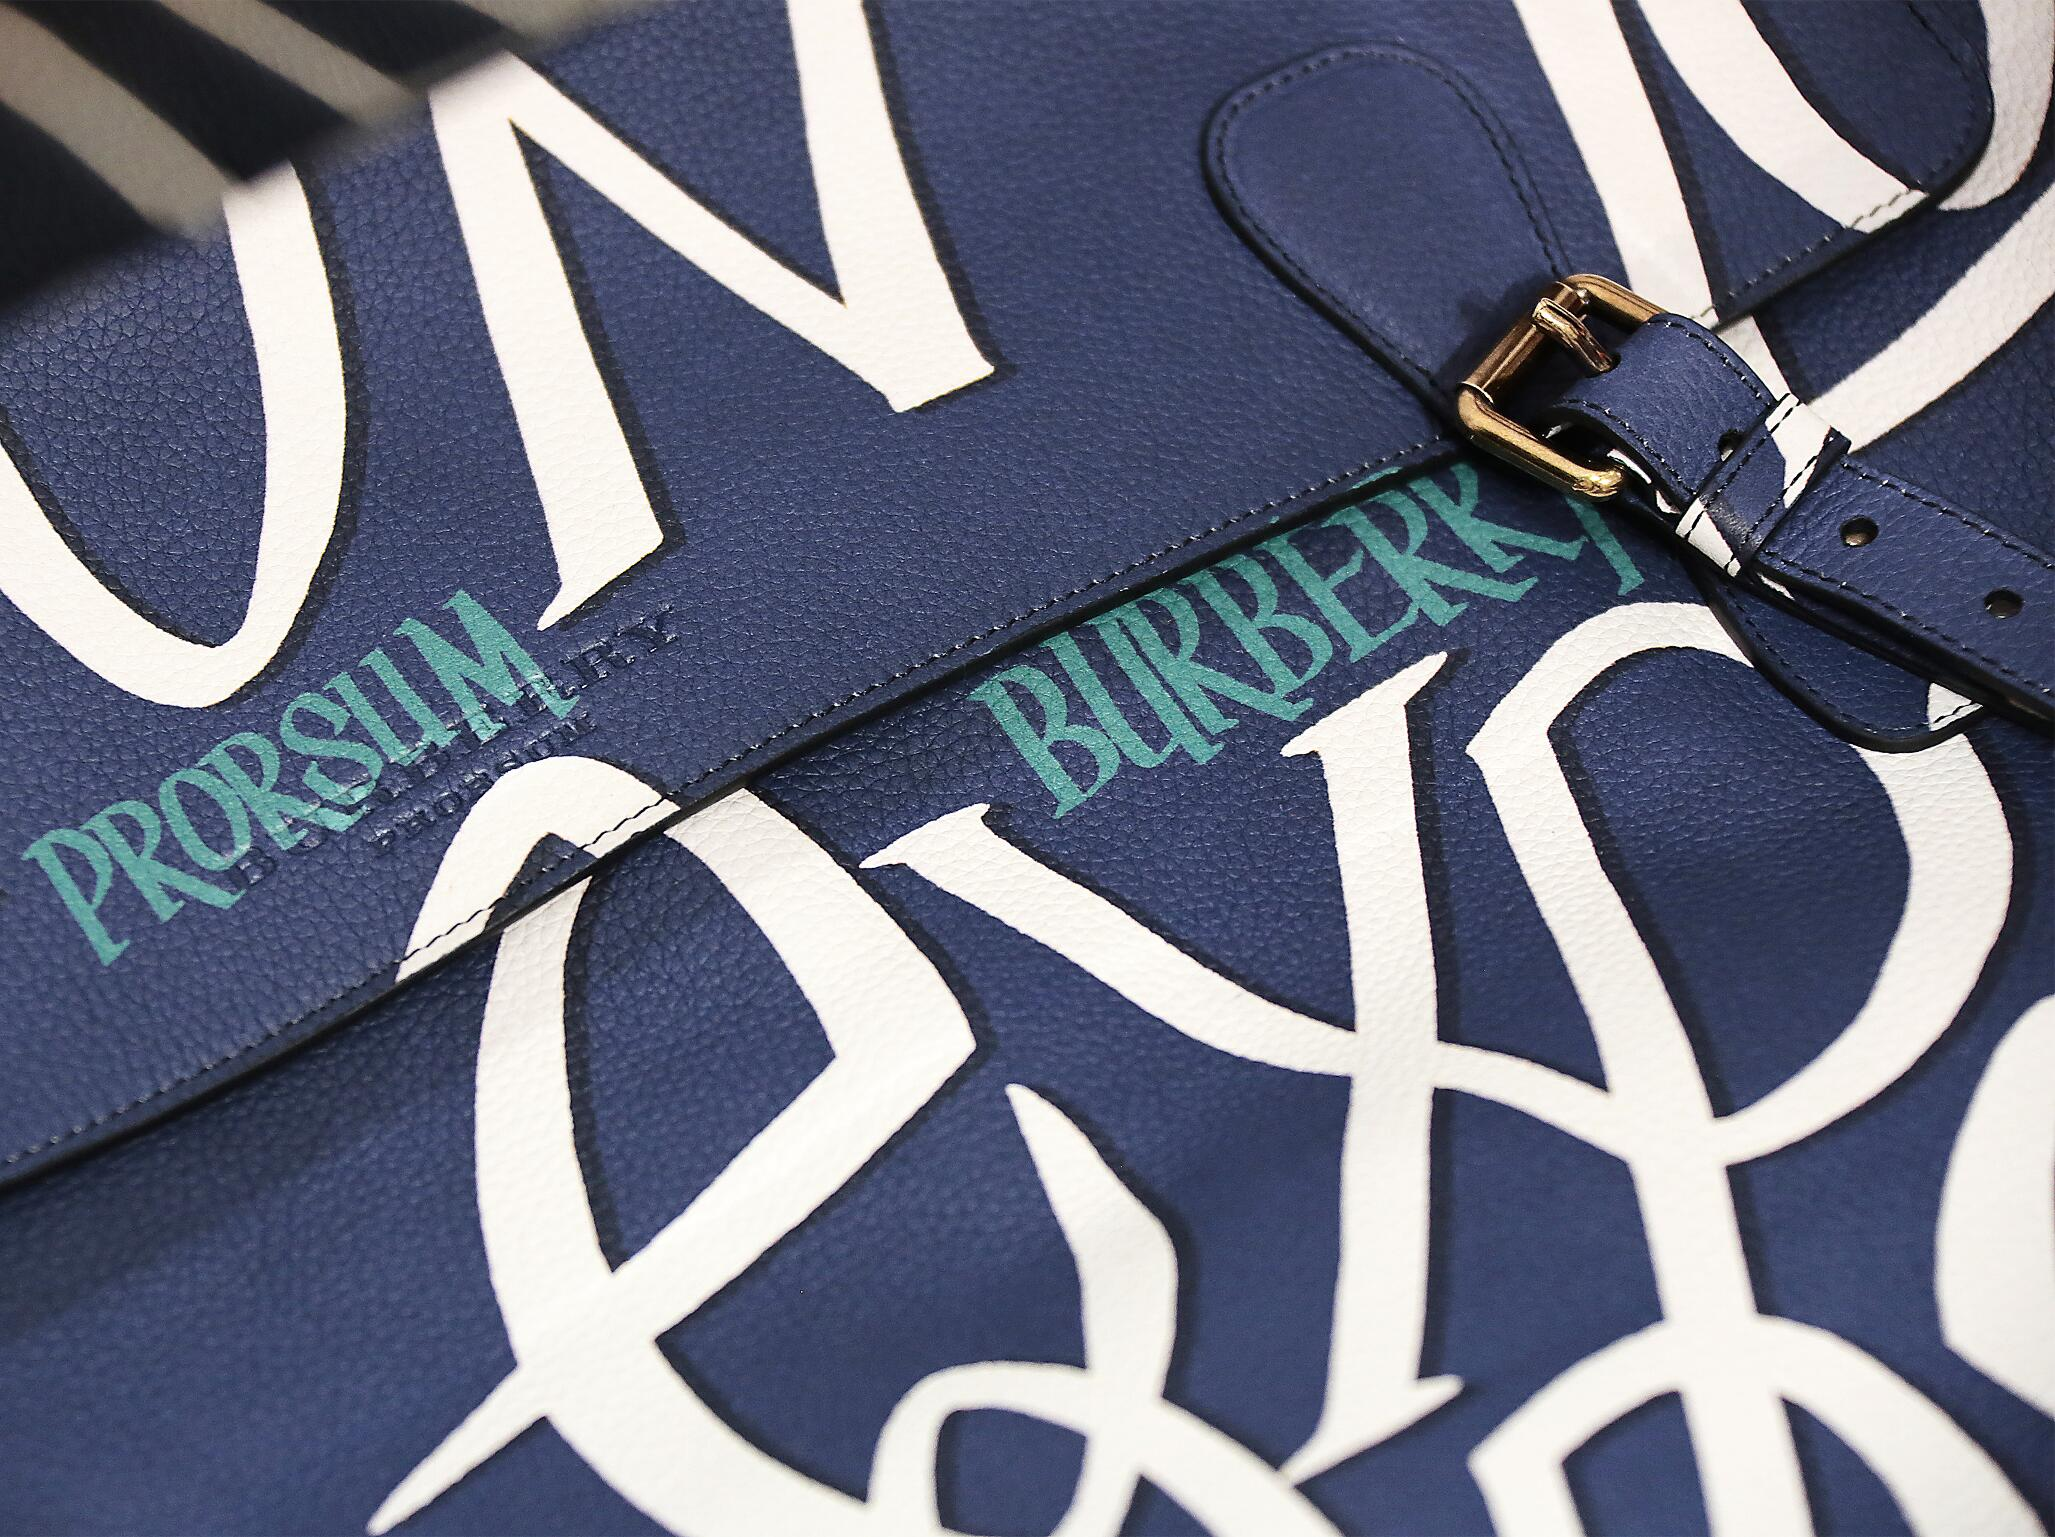 Backstage Burberry Prorsum Bag Details